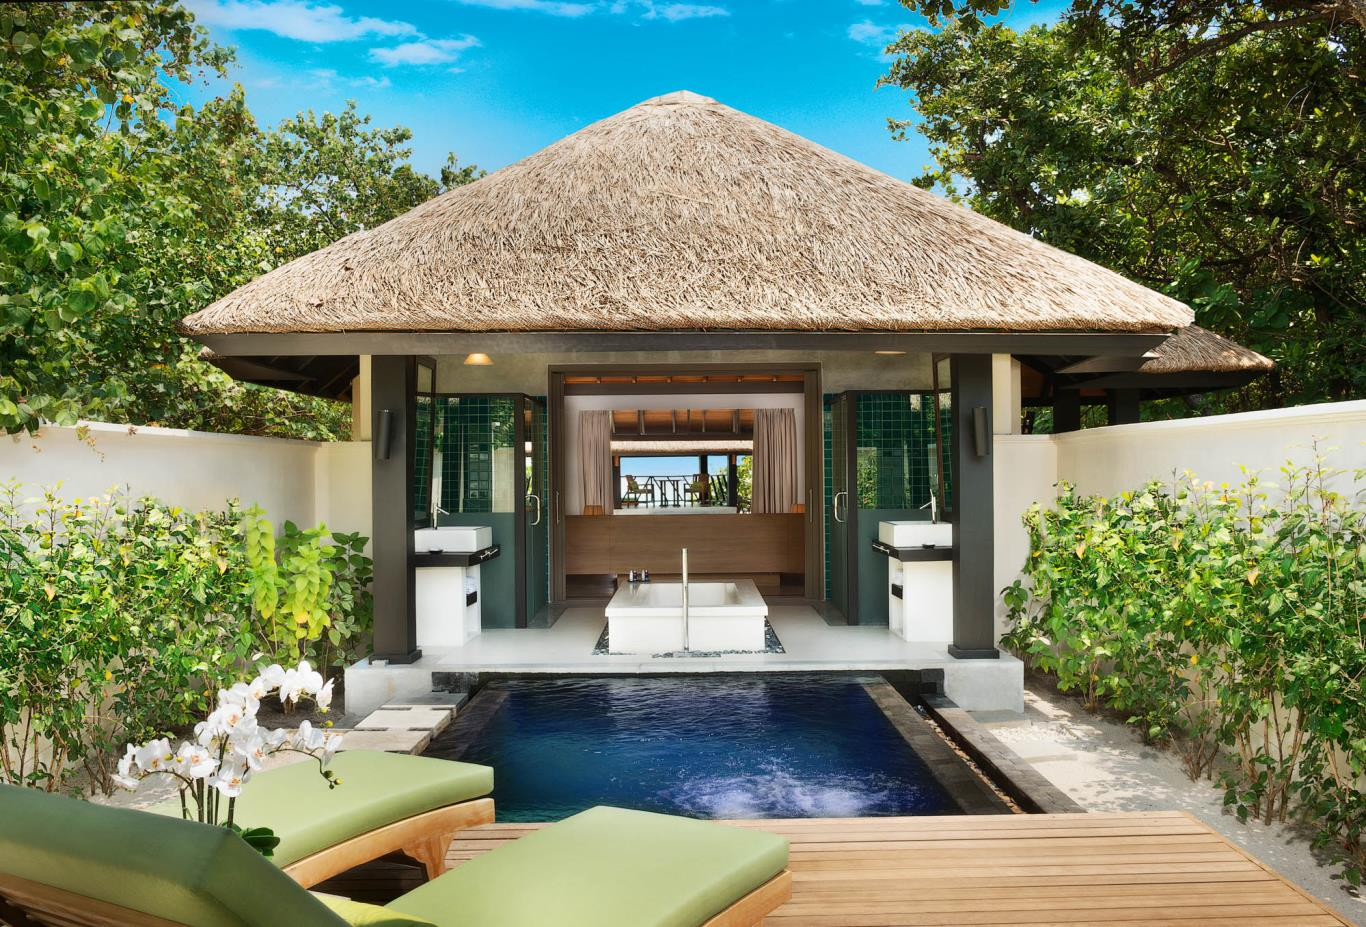 Beach Bungalow With Plunge Pool Exterior